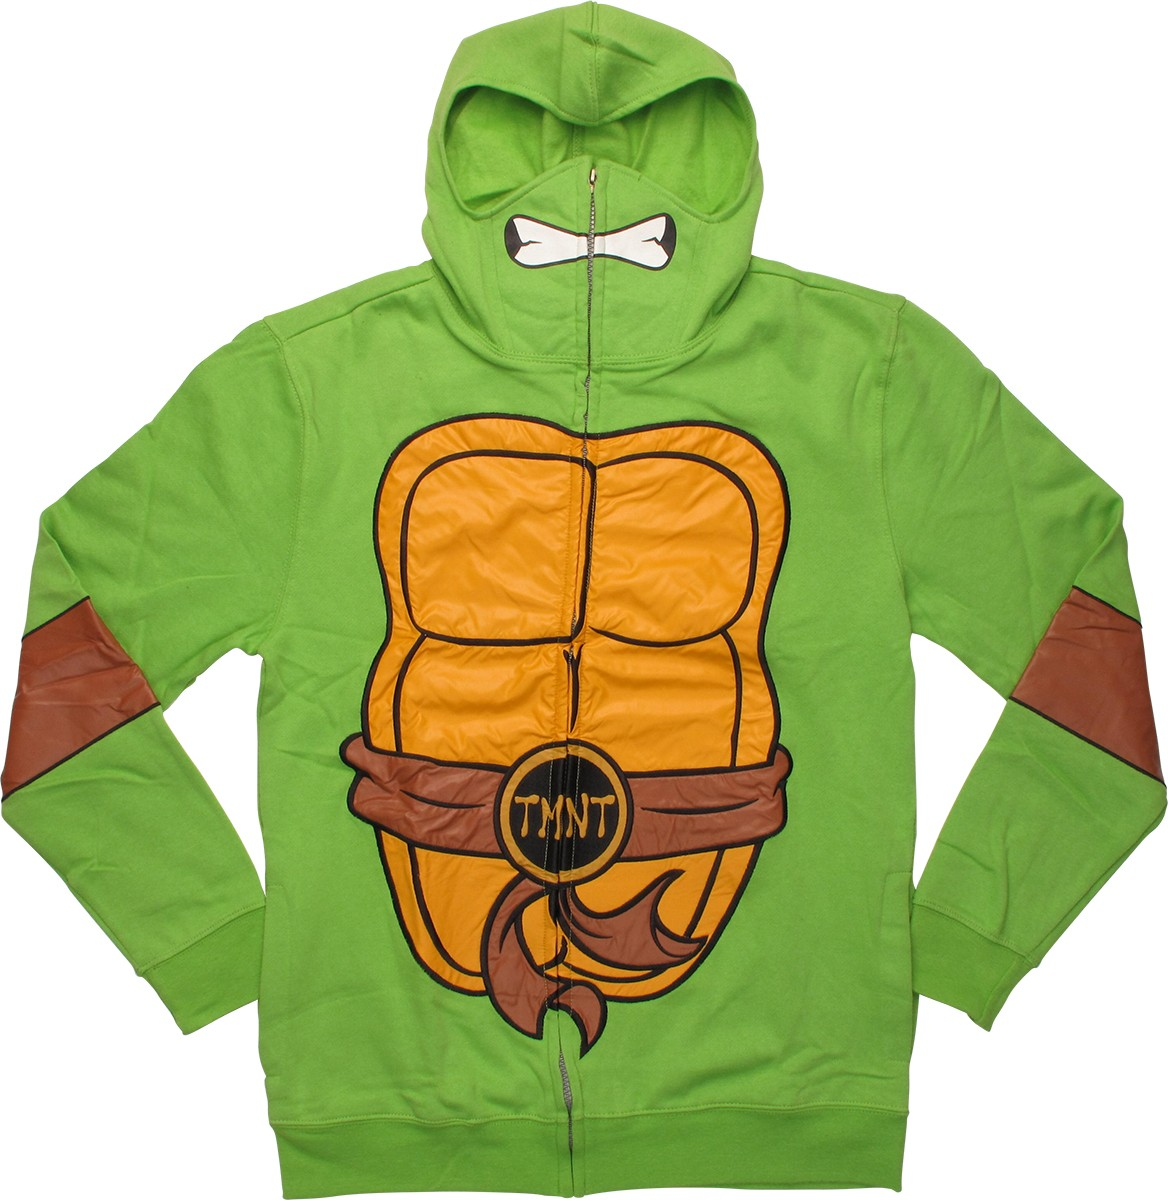 Shop Teenage Mutant Ninja Turtle Men's Hoodies & Sweatshirts from CafePress. The best selection of soft fleece Hoodies & Crew Neck Sweatshirts for Men, Women and Kids. Free Returns High Quality Printing Fast Shipping.